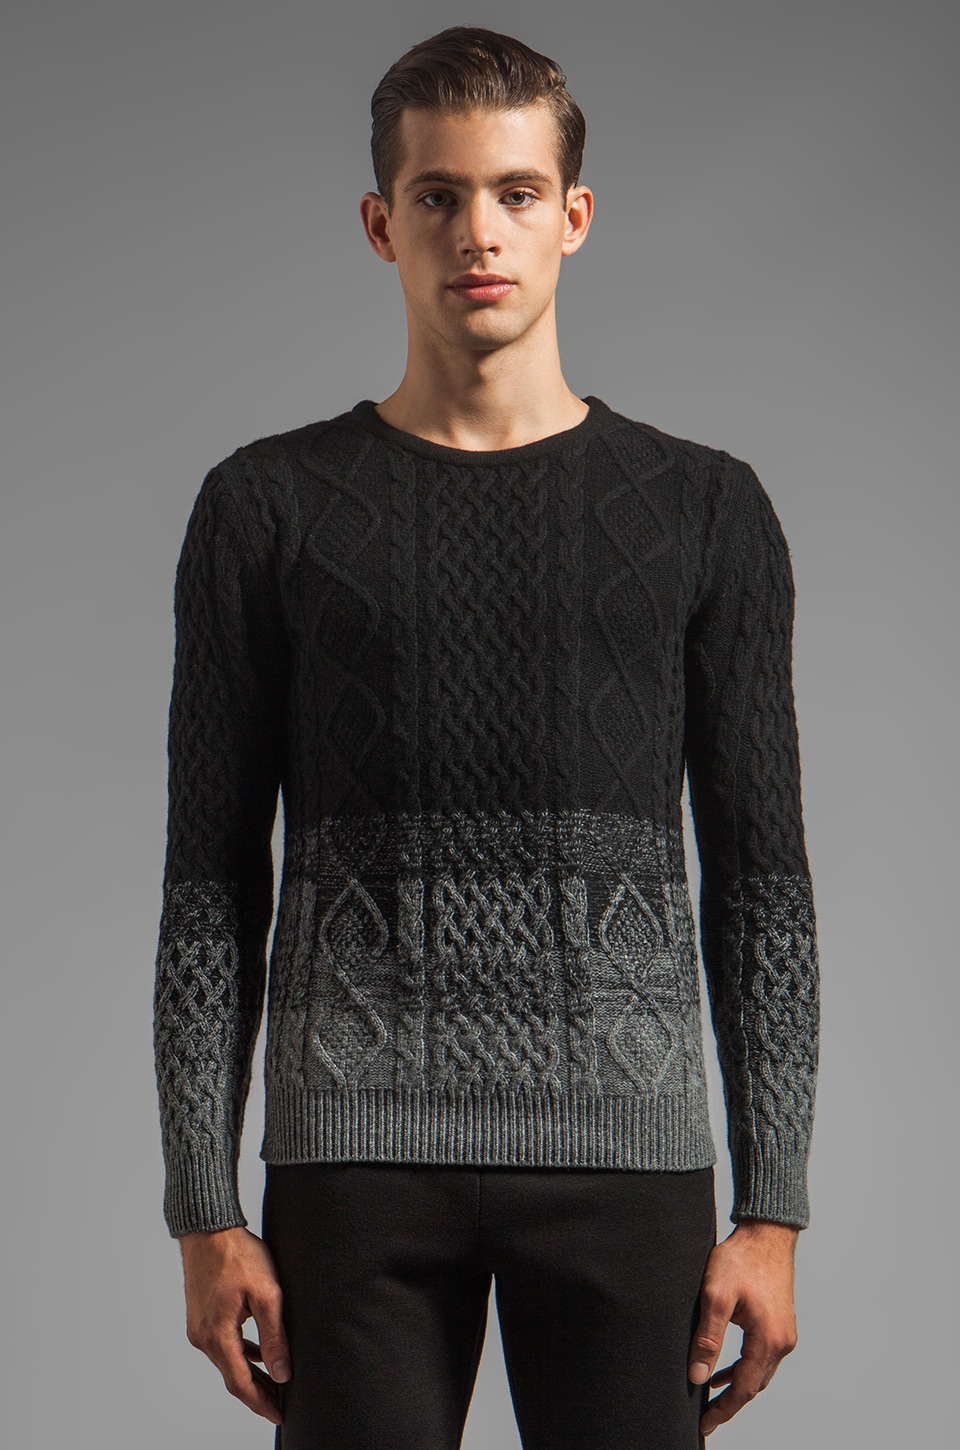 Munsoo Kwon Cable Sweater in Black/Dark Gray